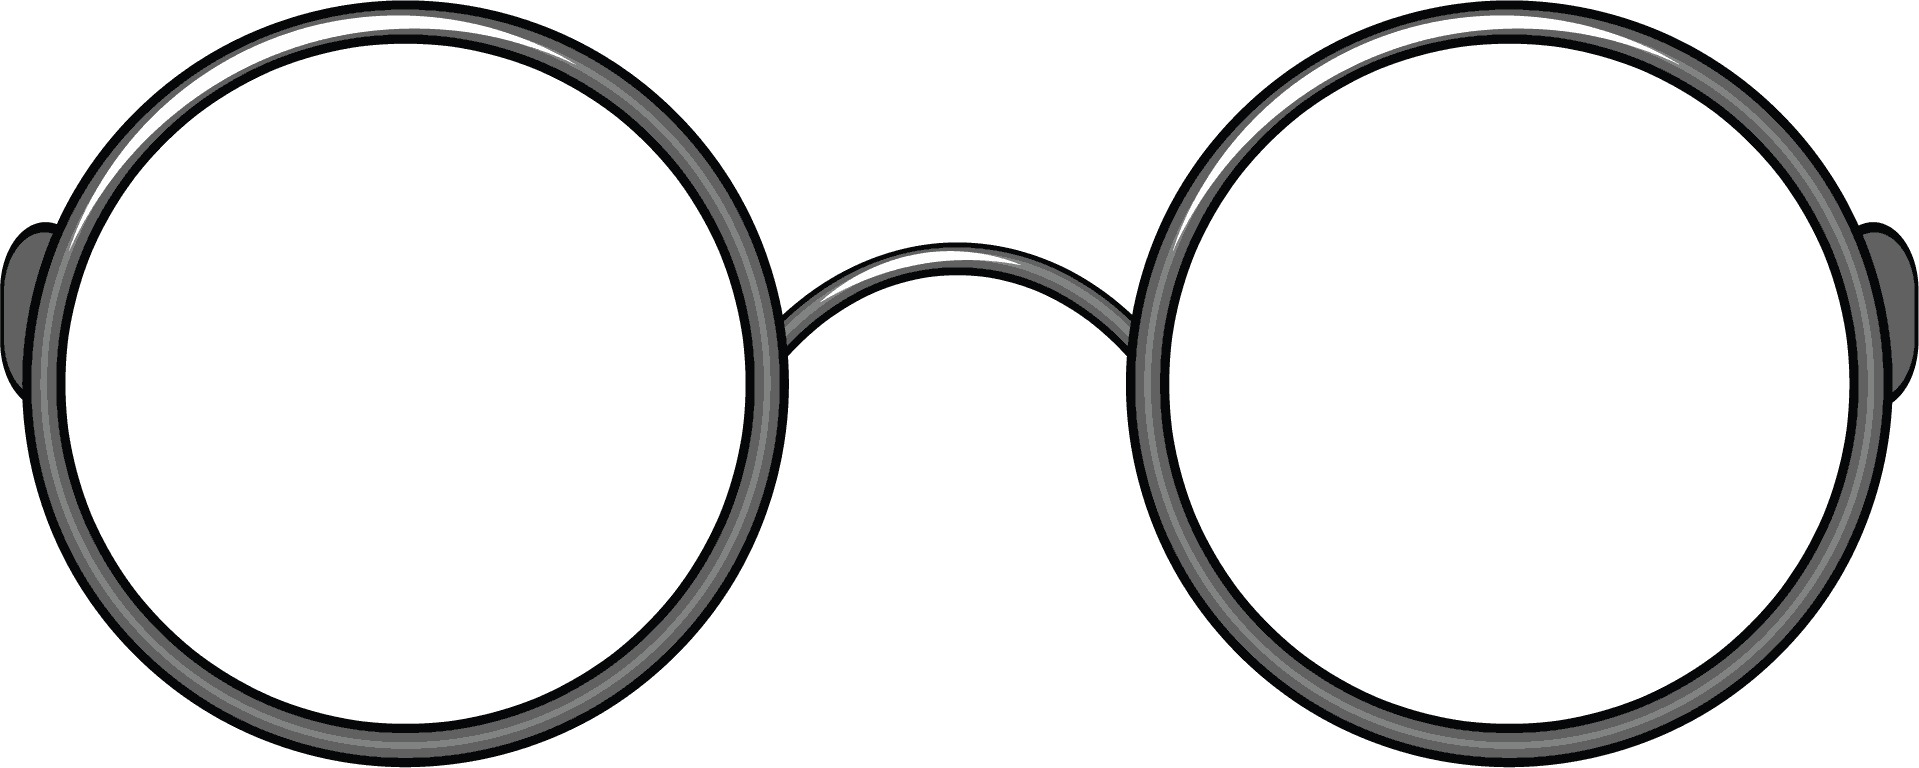 1919x768 Eye Glasses Clip Art